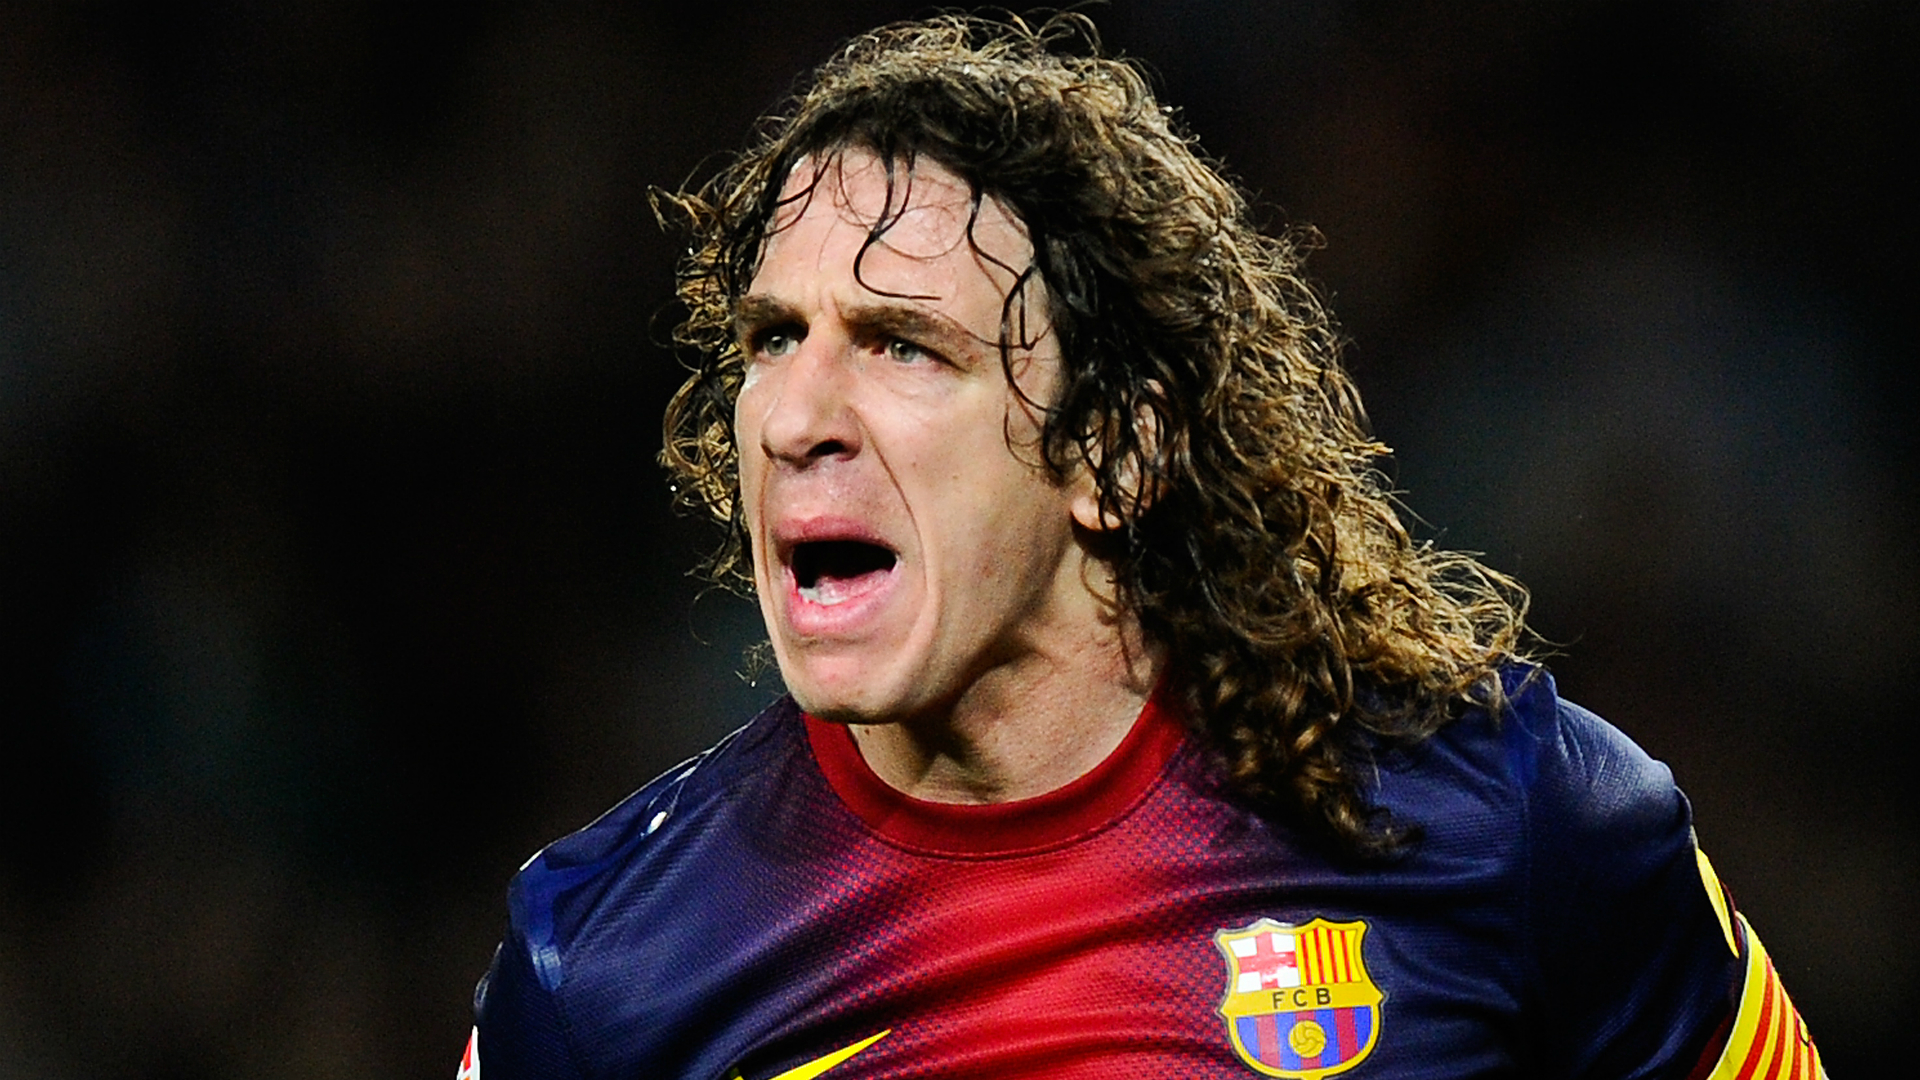 'It was like war with Puyol' - Soldado cites Barcelona great as toughest opponent